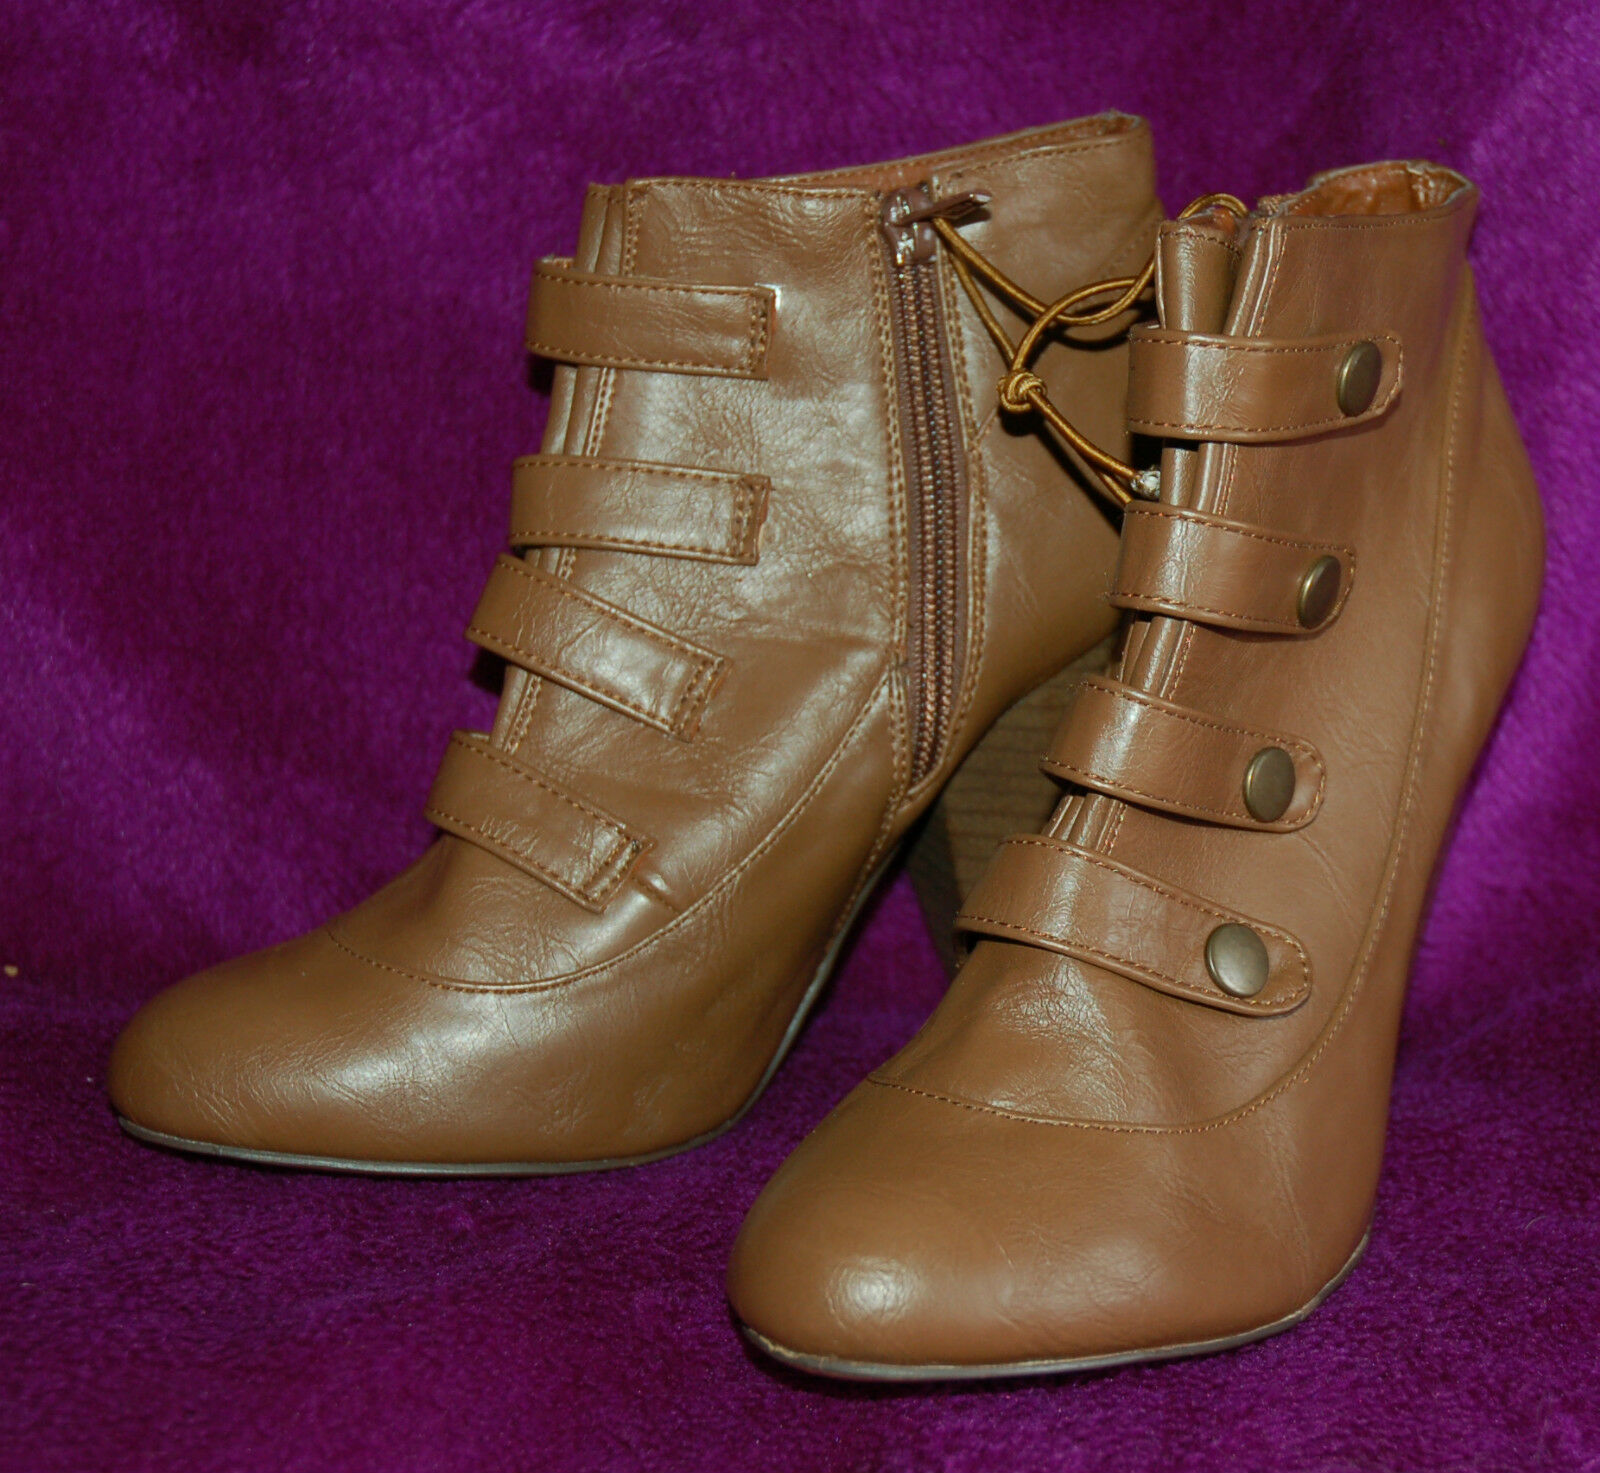 NEW Sz 5 Faux Leather Tan High heel Boots 4 popper straps Victorian Downton